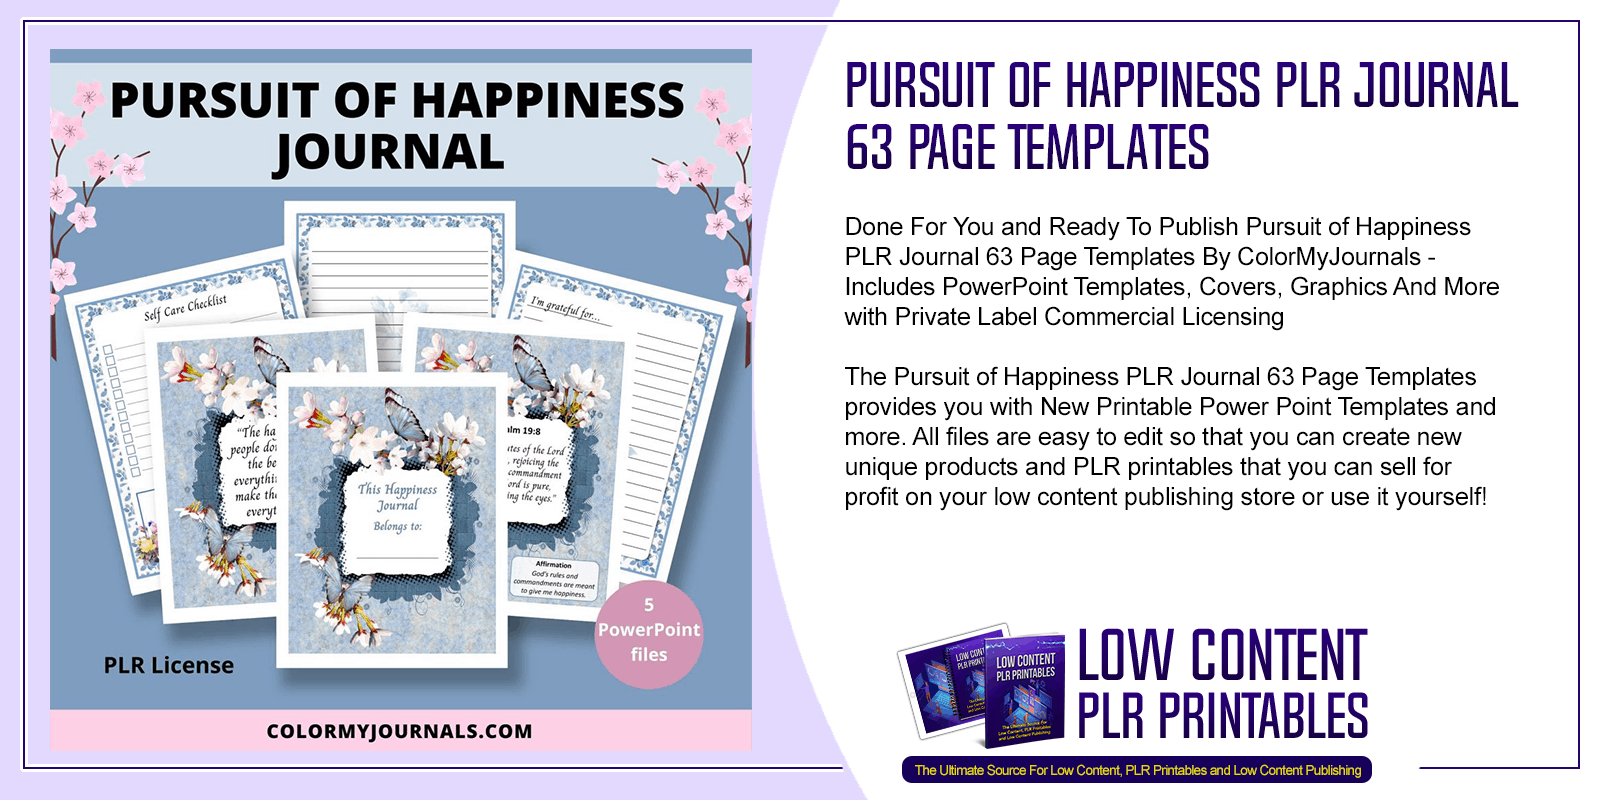 Pursuit of Happiness PLR Journal 63 Page Templates